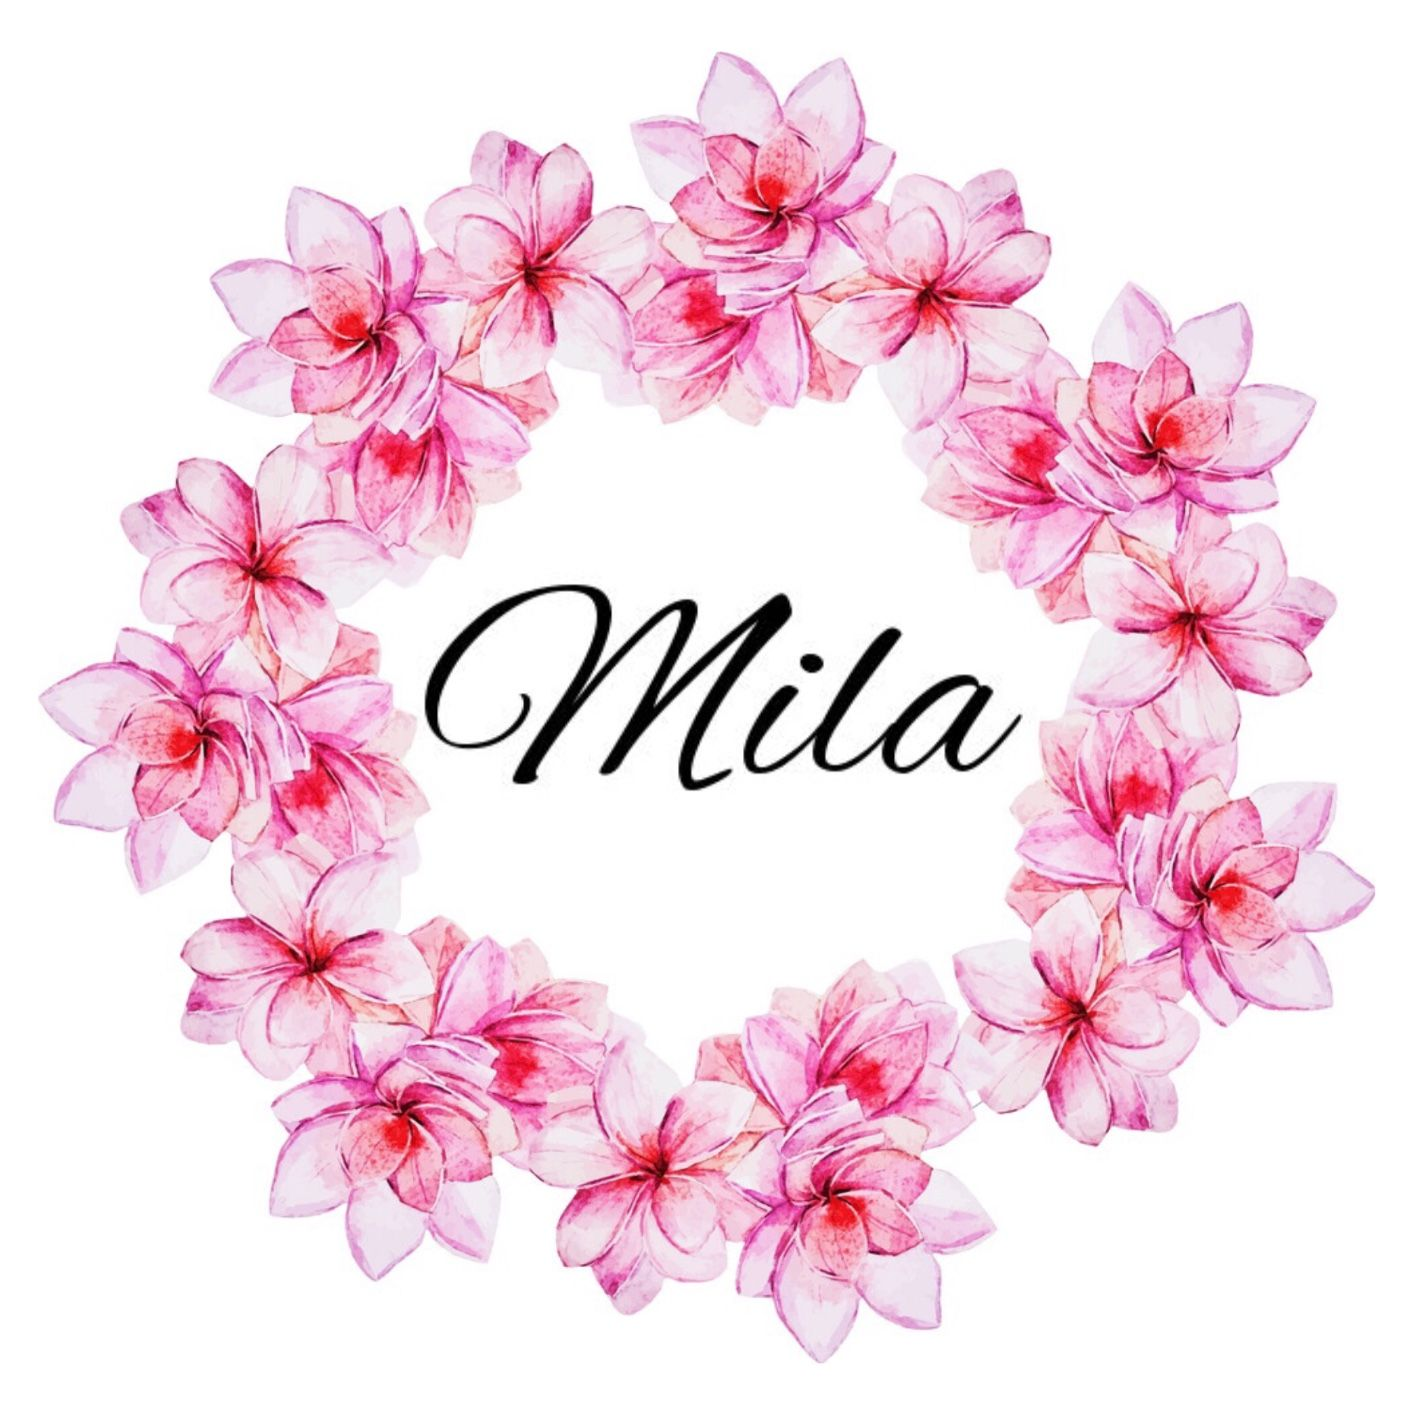 Girls Name In Floral Wreath Milla Milla Mila Mill Lah Mee Lah Polish Russian Young Ceremonial Attend Z Baby Names Iphone Wallpaper Glitter Baby Girl Names